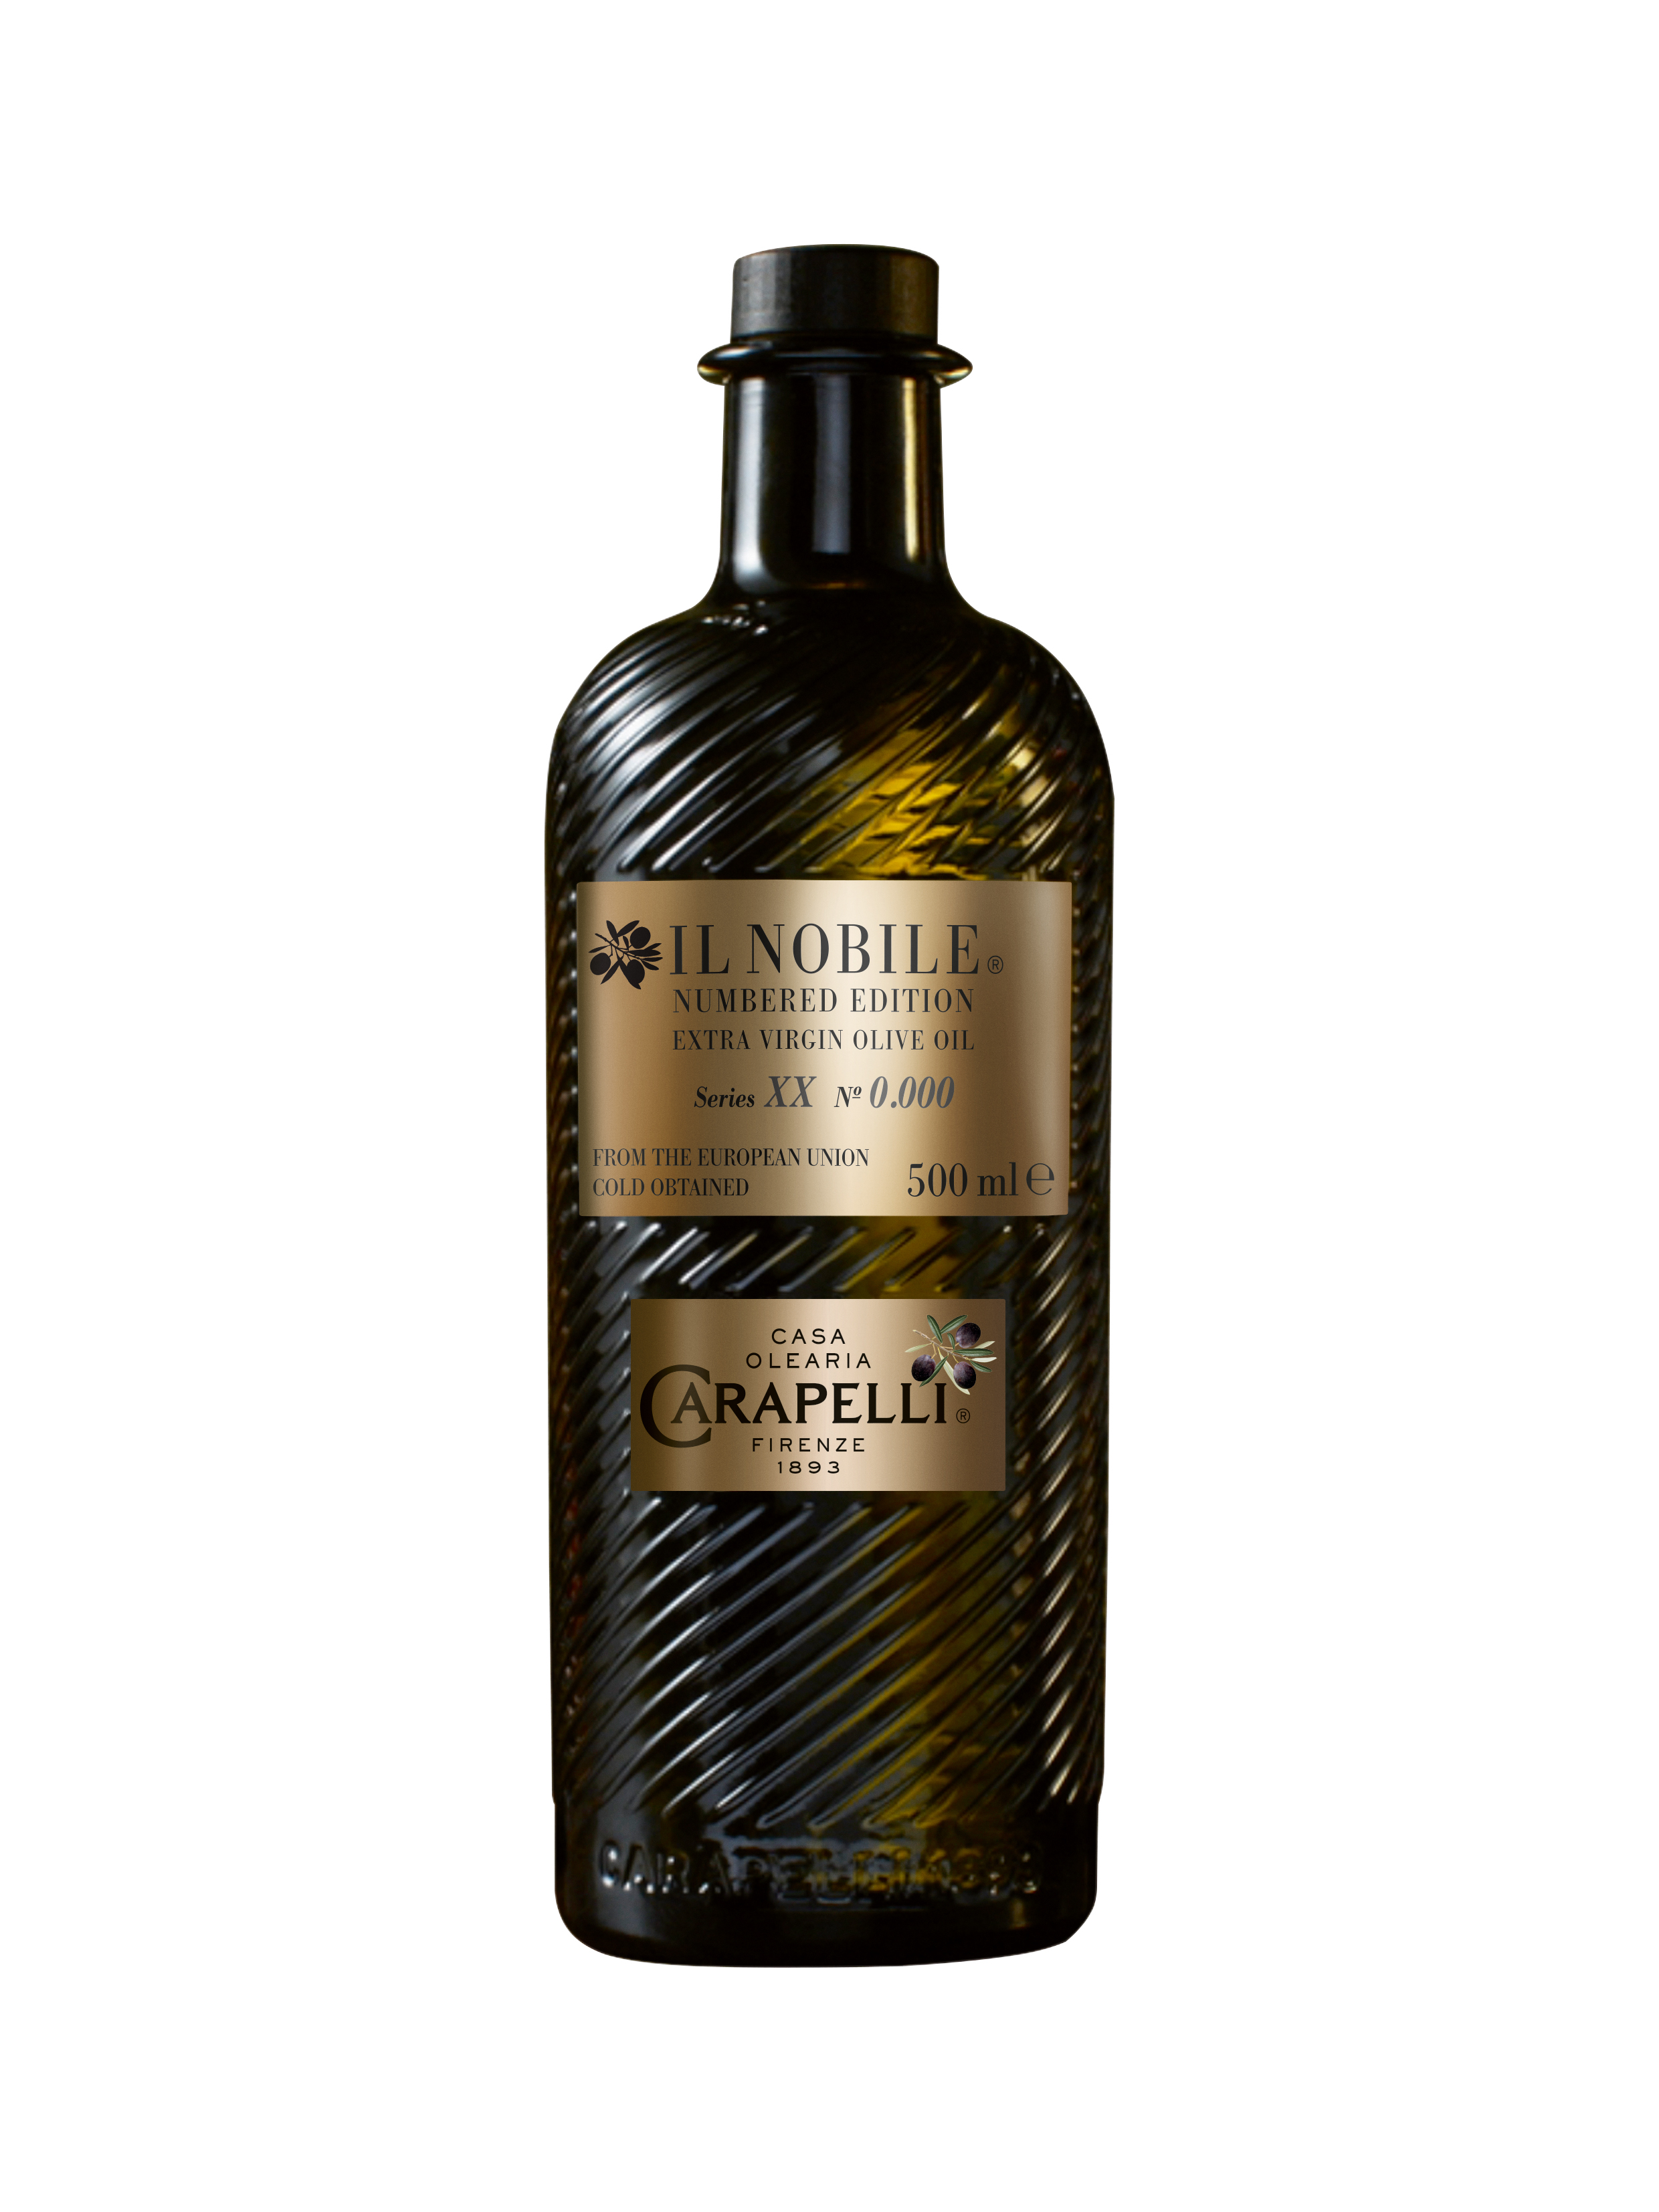 Carapelli Il Nobile 500ml